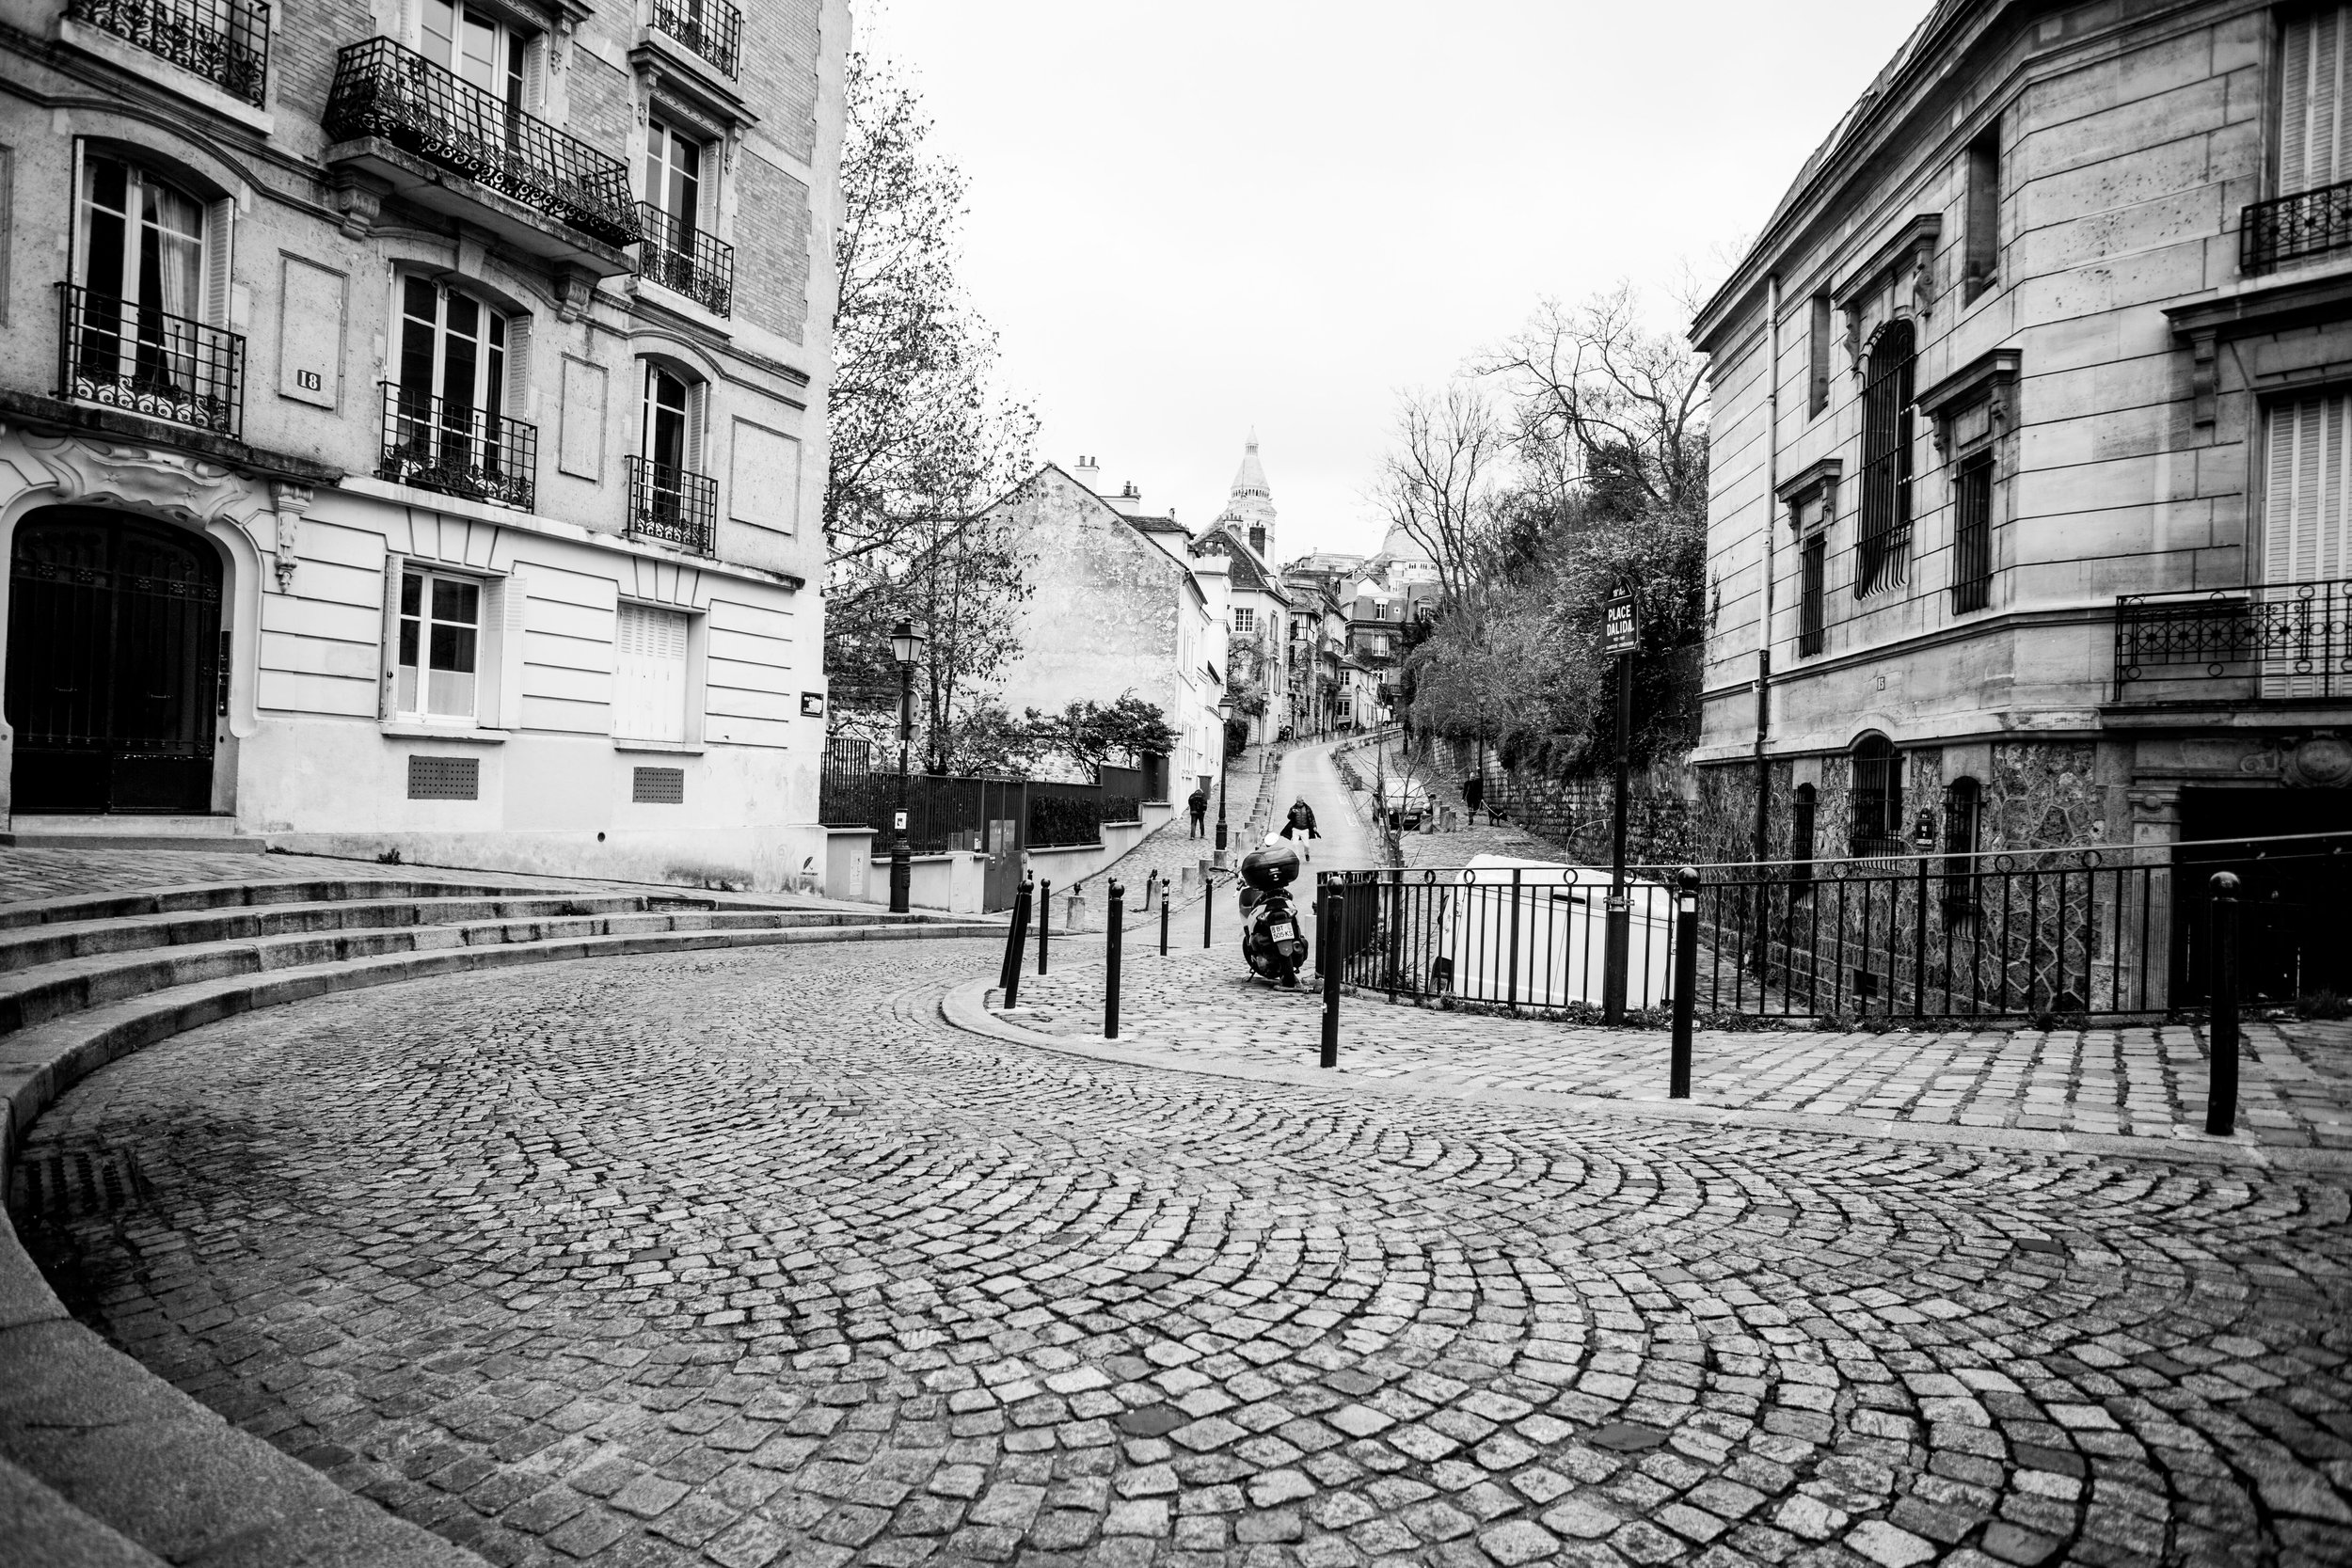 SNAPSHOTS OF MONTMARTRE - 5 DEC